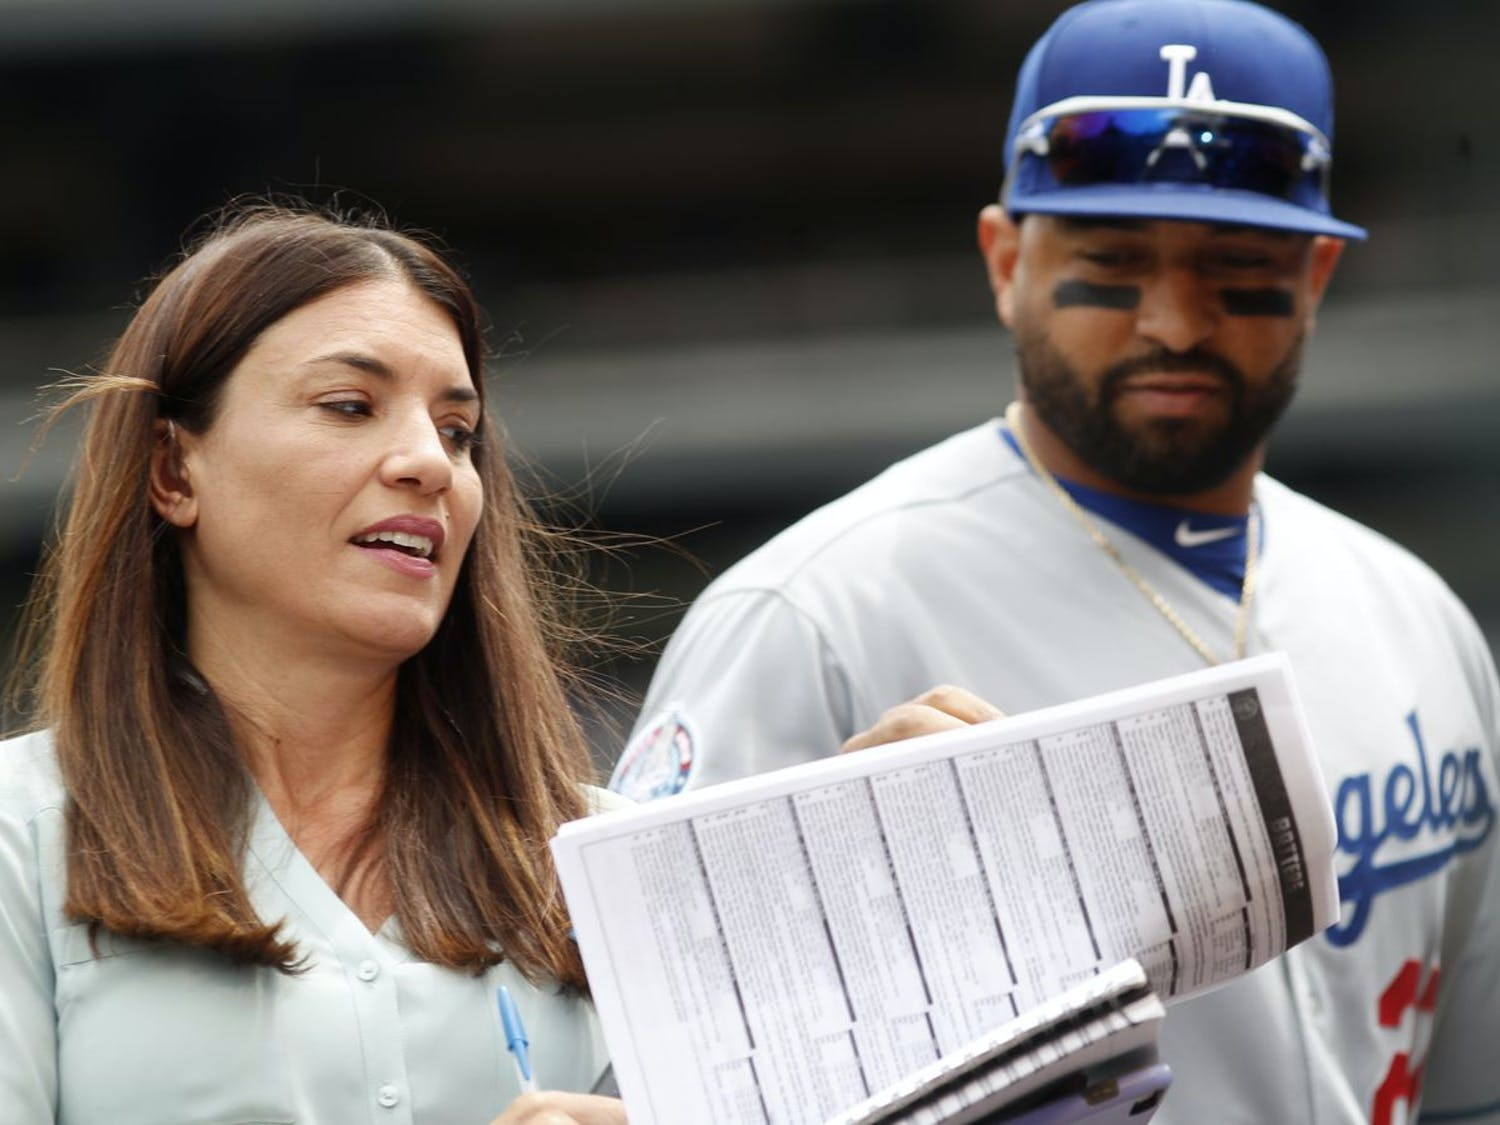 Alanna Rizzo, left, delivers a report before a 2018 game between the Los Angeles Dodgers and Colorado Rockies in Denver as then-Dodgers left fielder Matt Kemp looks on. Rizzo on Tuesday night will be part of Major League Baseball's first all-female broadcasting crew. [ DAVID ZALUBOWSKI | AP ]